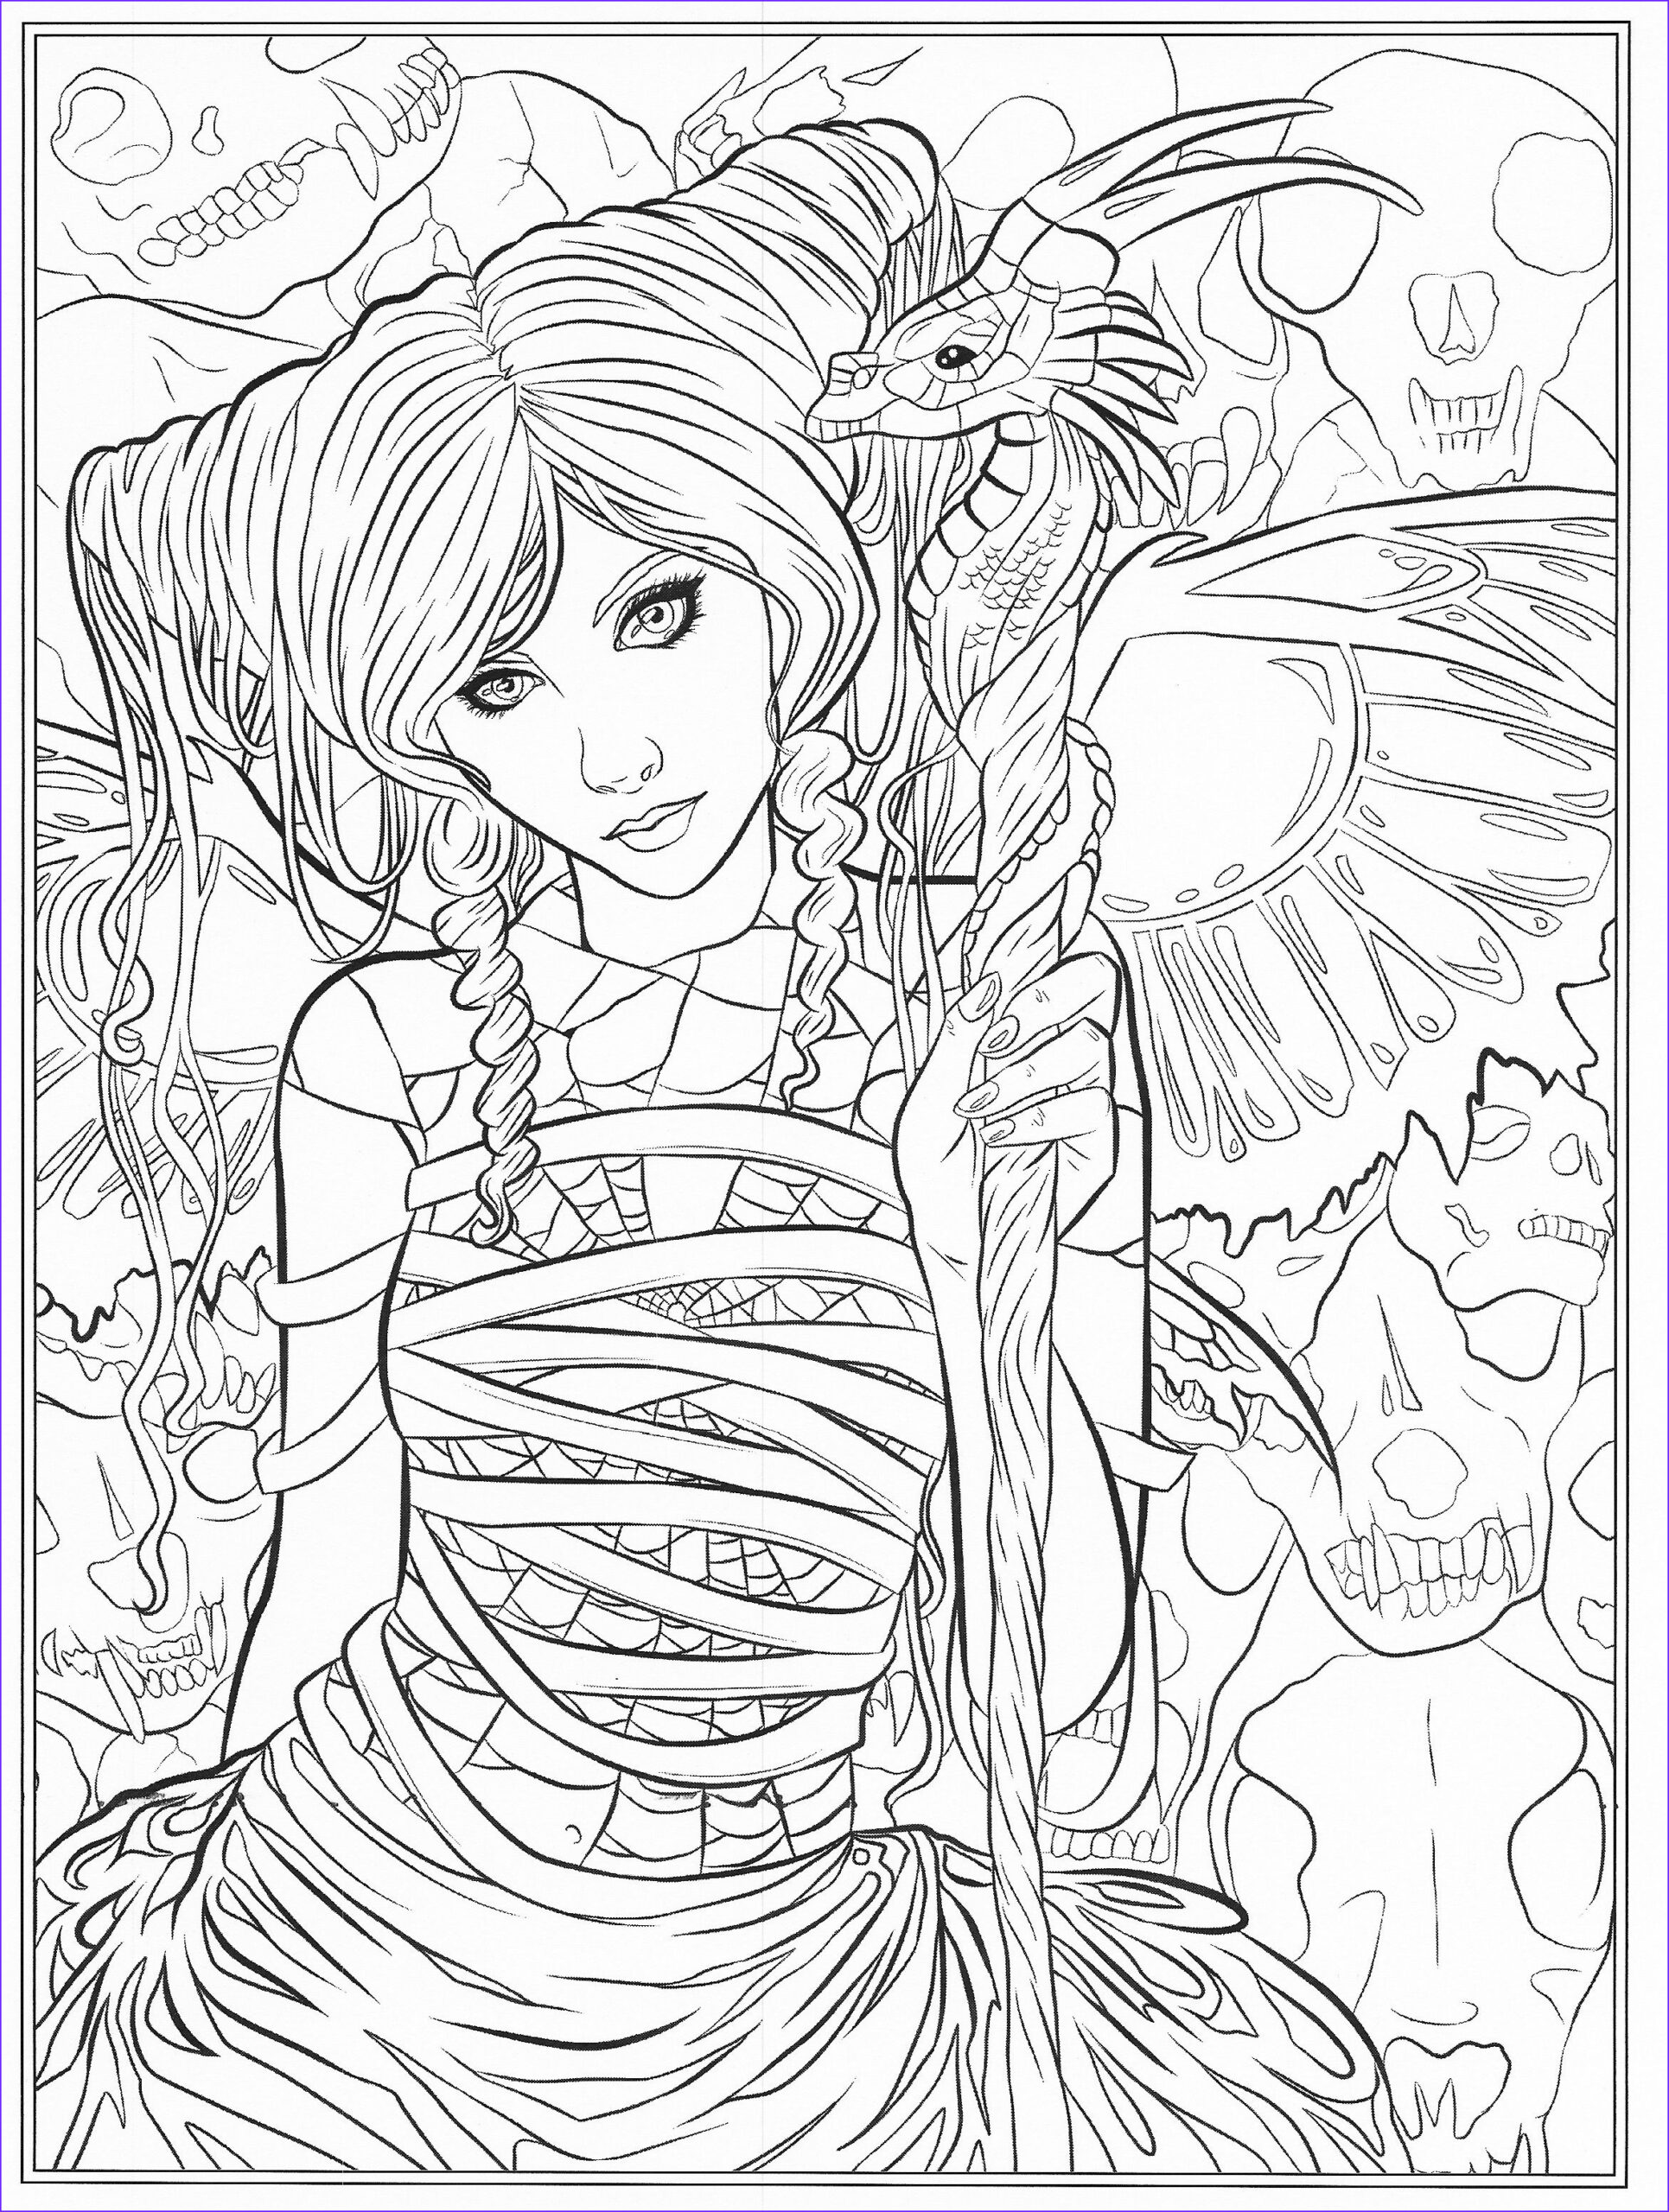 Fantasy Adult Coloring Pages Inspirational Stock Pin by Val Wilson On Coloring Pages Pinterest